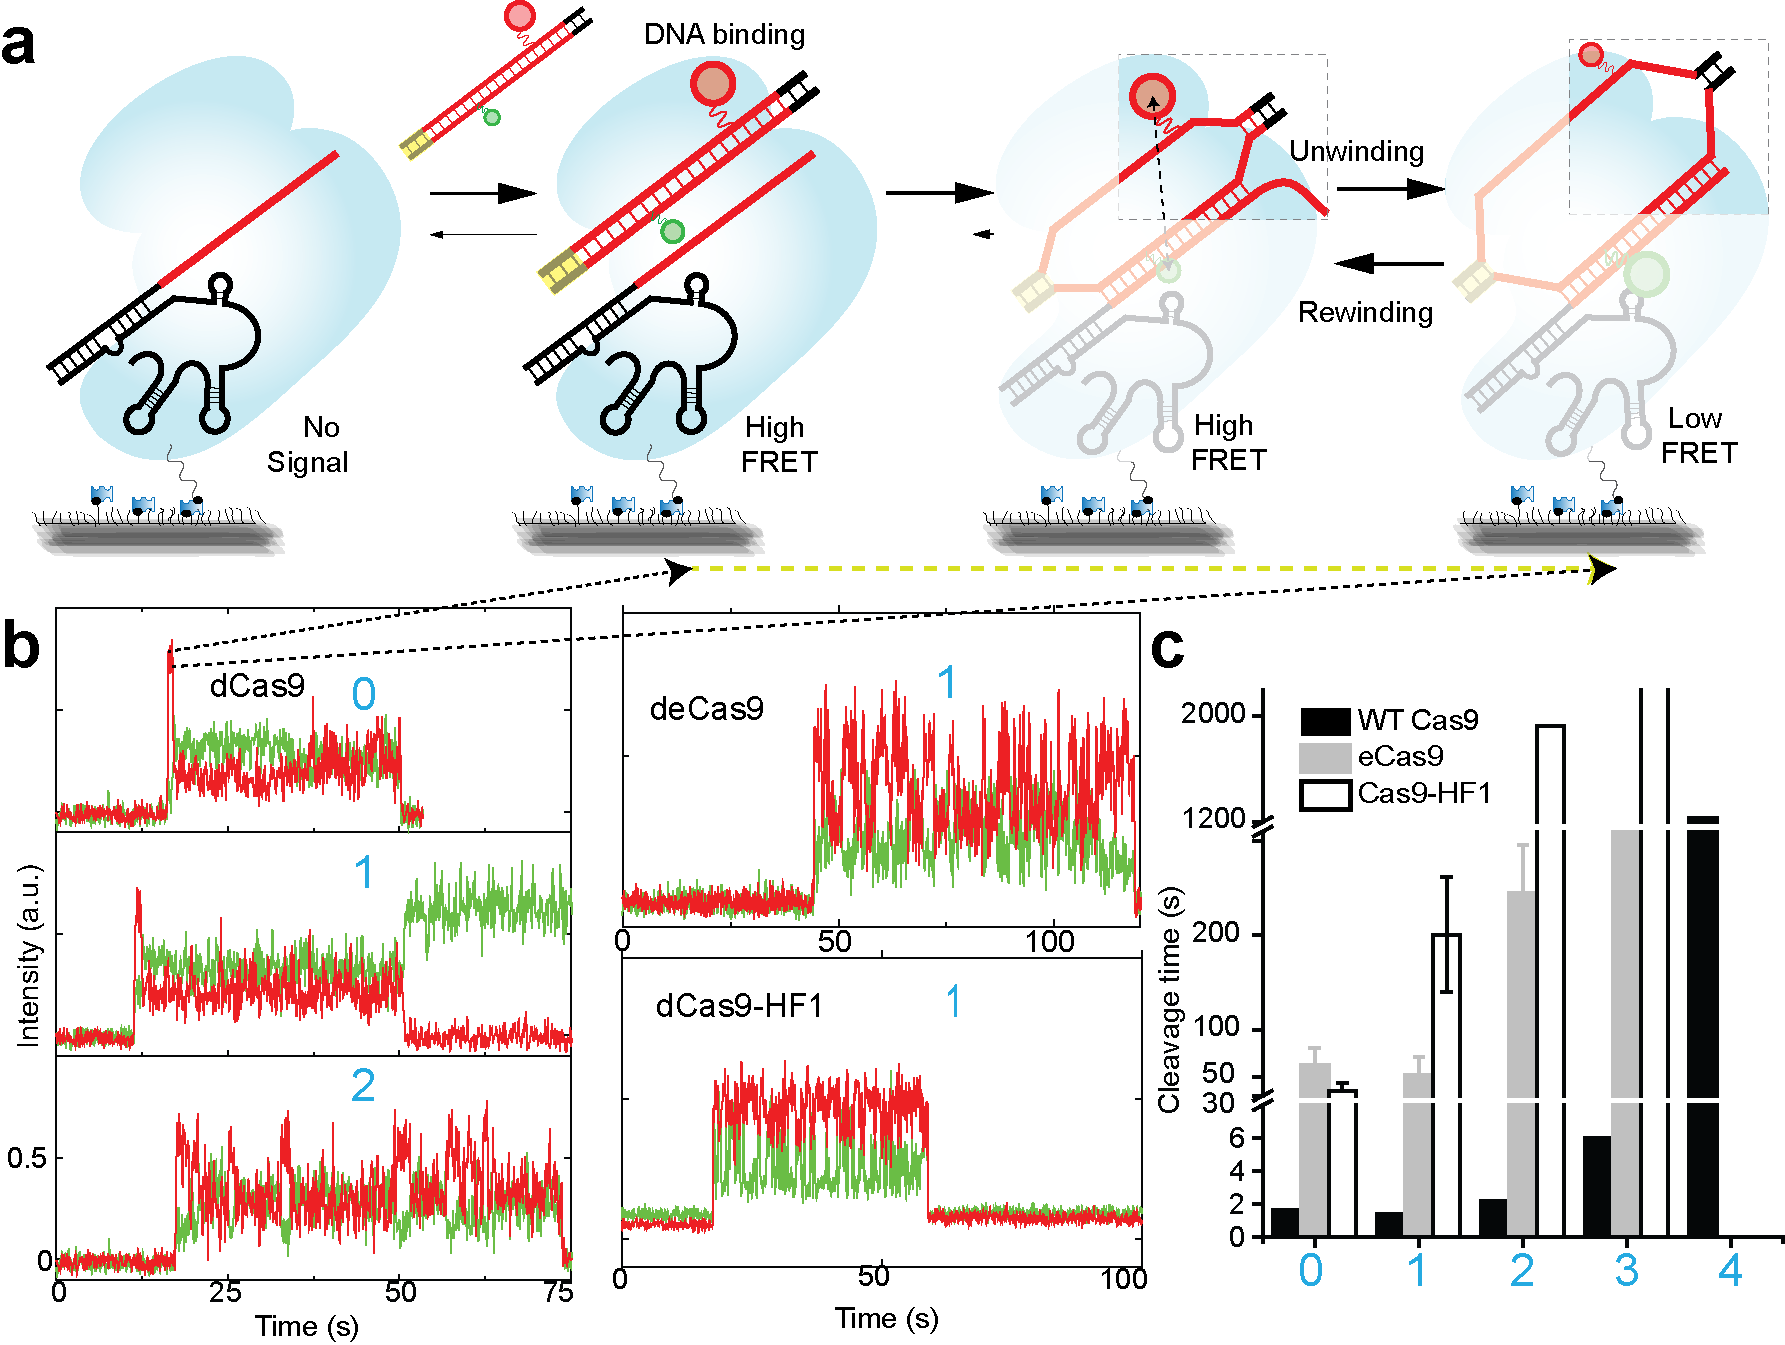 Figure 4. DNA unwinding guides cleavage action by Cas9-RNA.  Cas9-RNA requires   ≥ 16 PAM-proximal matching bp for cleavage but requires only ≥ 9 for ultra-stable binding (Fig. 1-2). This observation indicate that Cas9-RNA remains irreversibly bound to many DNA without ever cleaving, hence there must be an internal intra-molecular determinant of cleavage in Cas9-RNA-DNA. We reasoned that it could be the Cas9-RNA induced DNA unwinding and developed  (a)  a single-molecule FRET assay for real-time investigation of Cas9-RNA induced DNA unwinding. The FRET pair were placed in the two opposite strands of the dsDNA target, the separation between which increase during unwinding leading to a lower FRET efficiency. FRET efficiency reports on the different extent of DNA unwinding in real-time.  (b)  DNA unwinding in real-time with mismatches and different Cas9 variants shows how both PAM-distal mismatches and mutations of engineered Cas9s (deCas9 & dCas9-HF1) can destablize a fully unwound DNA state.  (c)  This destabilization correlated with reduced rate of cleavage underlying the importance of DNA unwinding for cleavage action of Cas9. Figures adapted from :  Nat Struct Mol Biol. 2018 Apr; 25(4): 347–354.  PMCID: PMC6195204